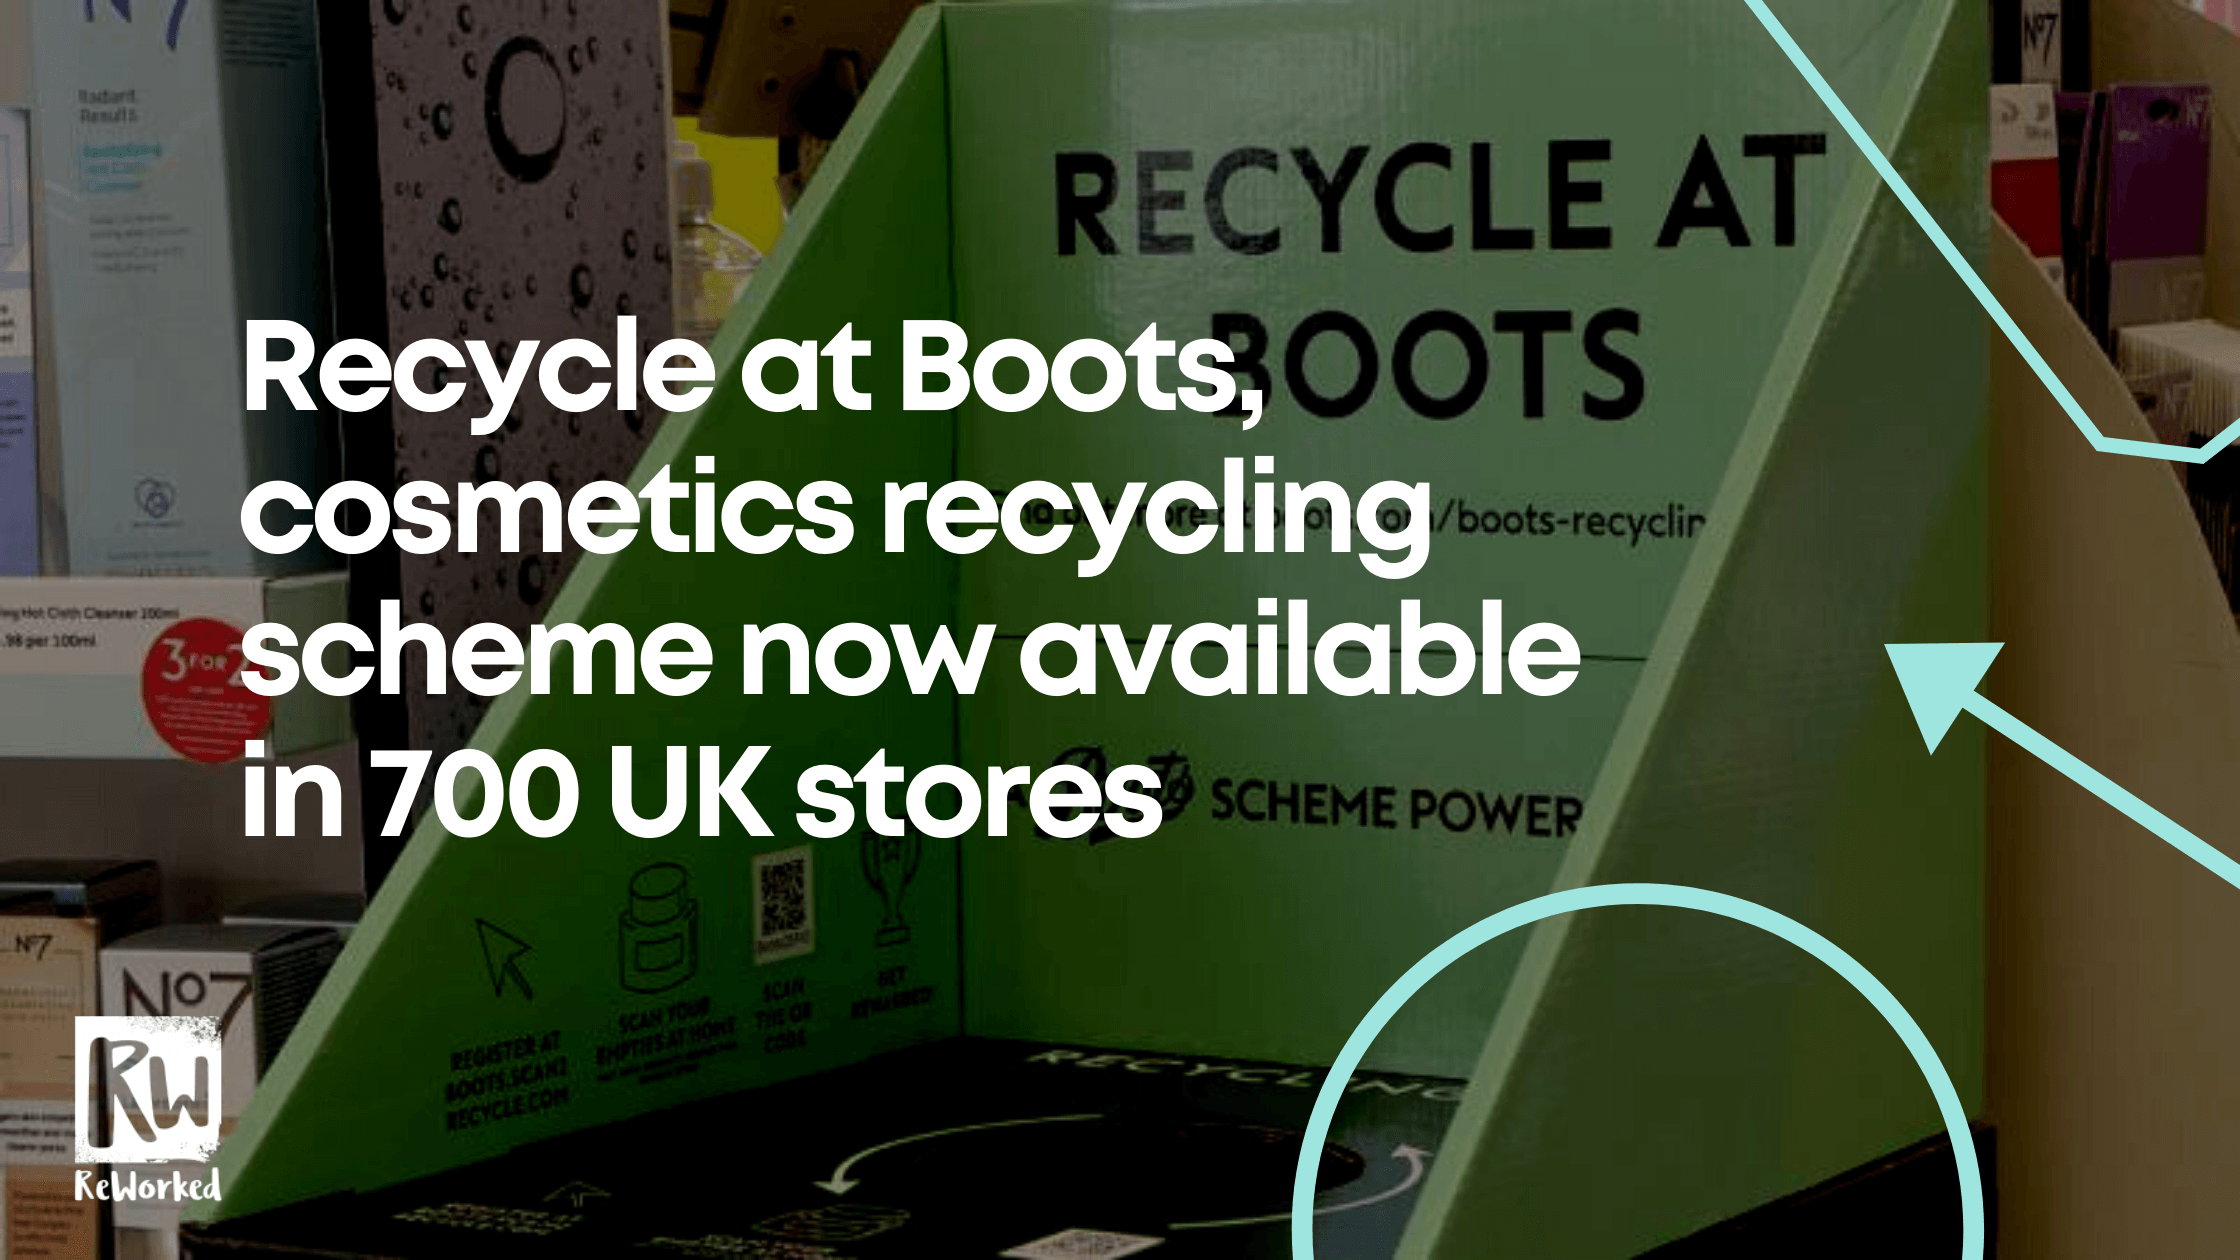 Recycle at boots launches in 700 stores UK